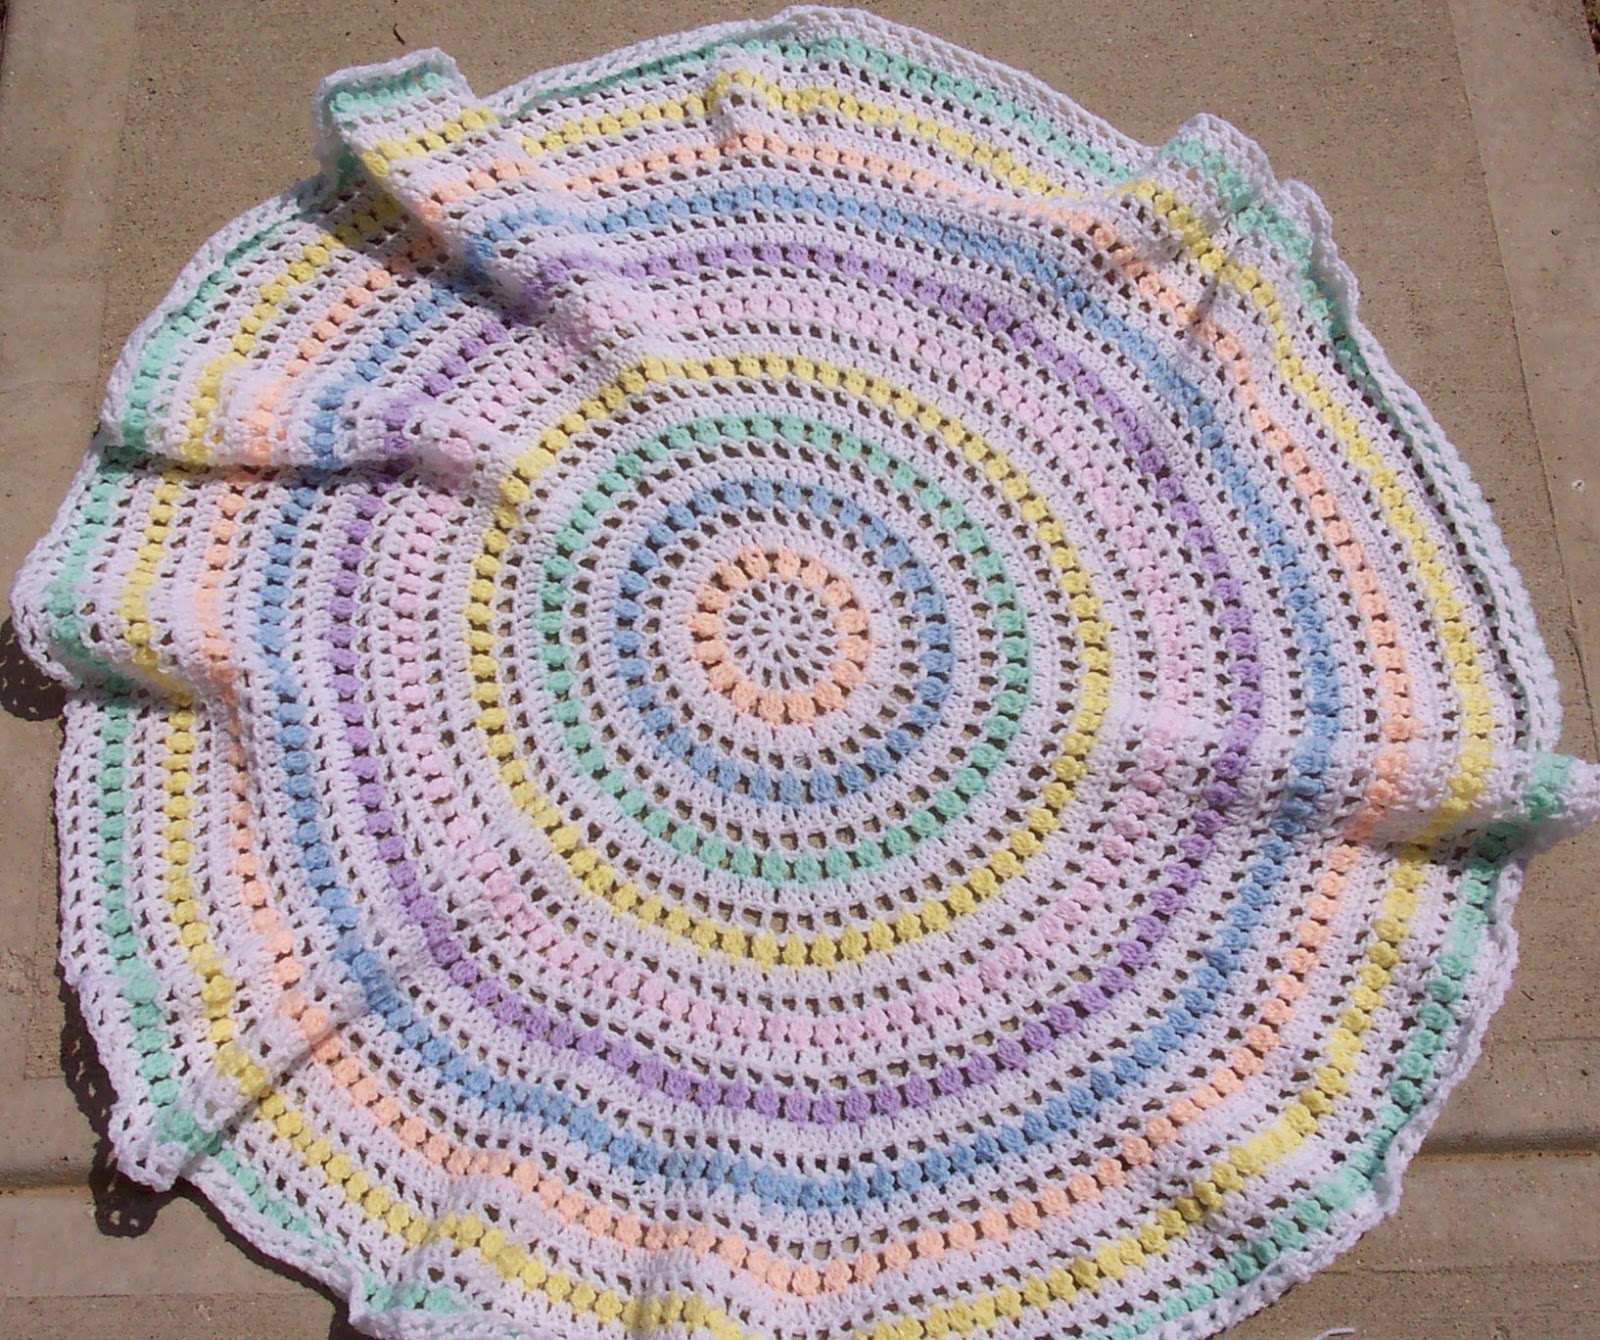 Free Crochet Pattern For Circle Baby Blanket : SmoothFox Crochet and Knit: Testers Found - Spring Circle ...